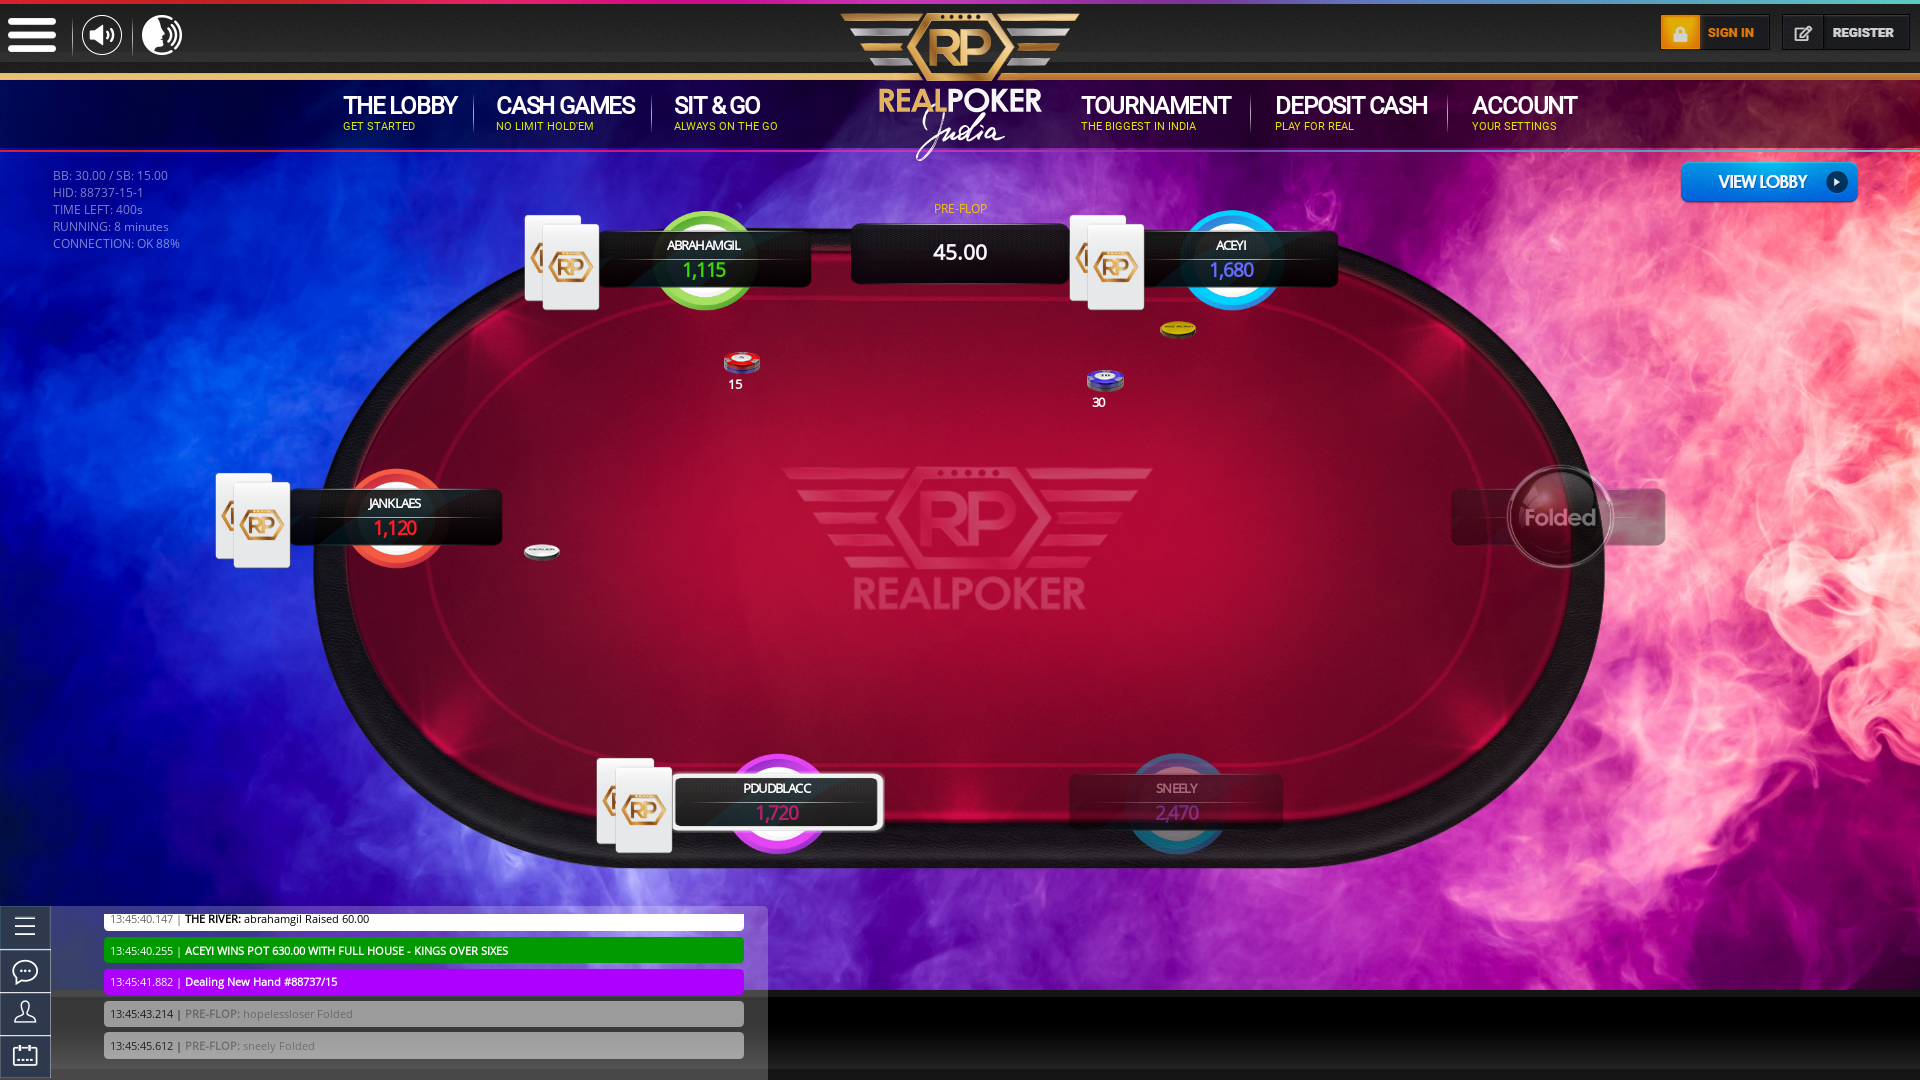 Real Poker India Online Game Table from July